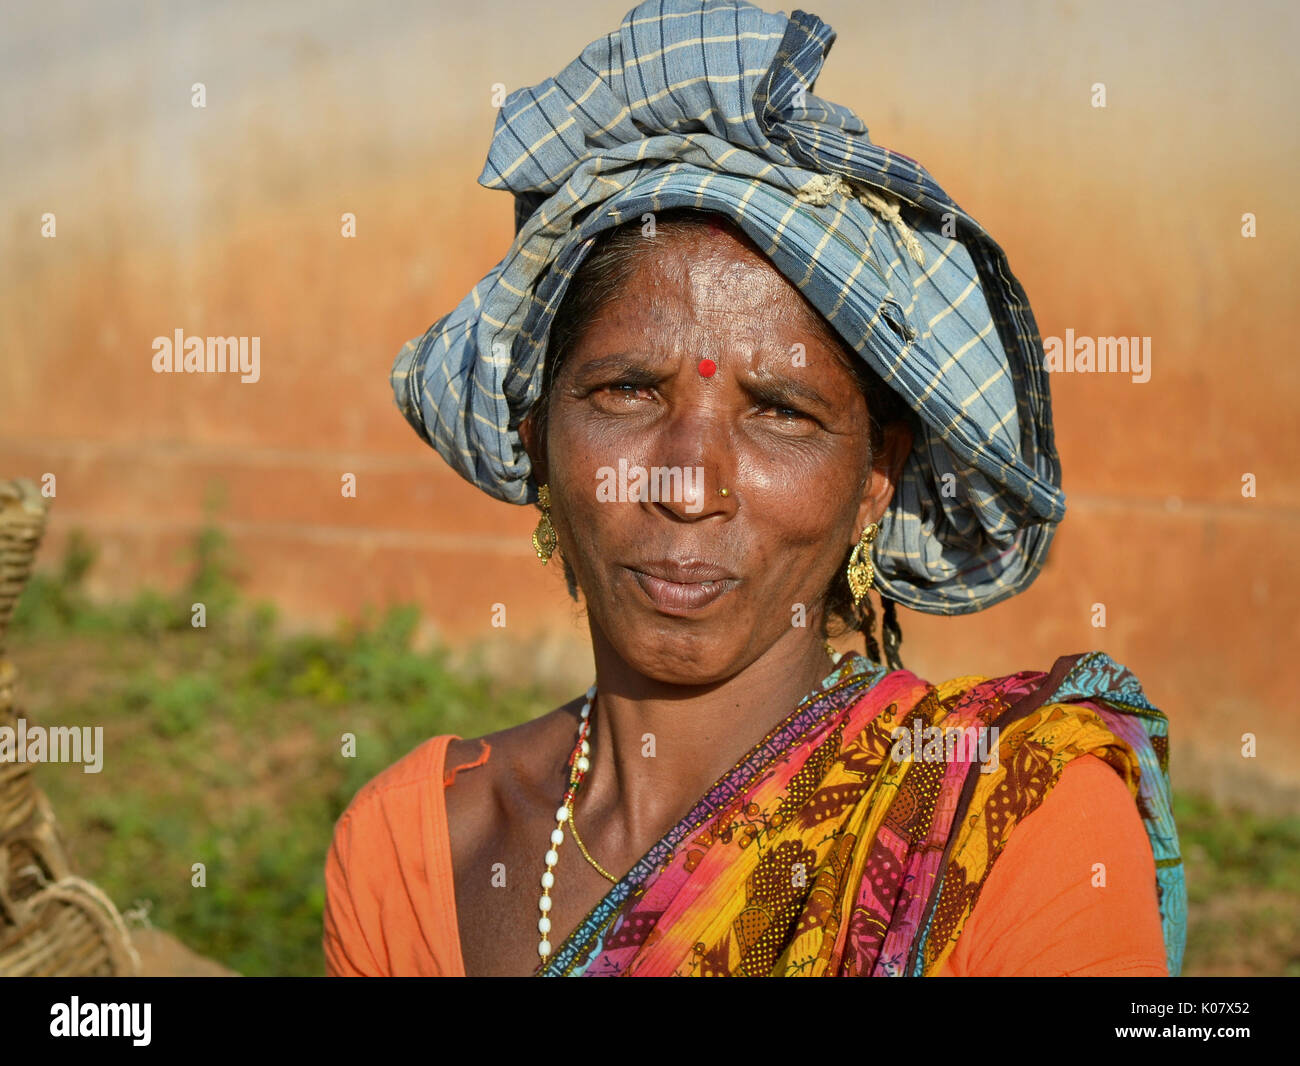 Middle-aged Indian Adivasi market woman with precious golden drop earrings. - Stock Image